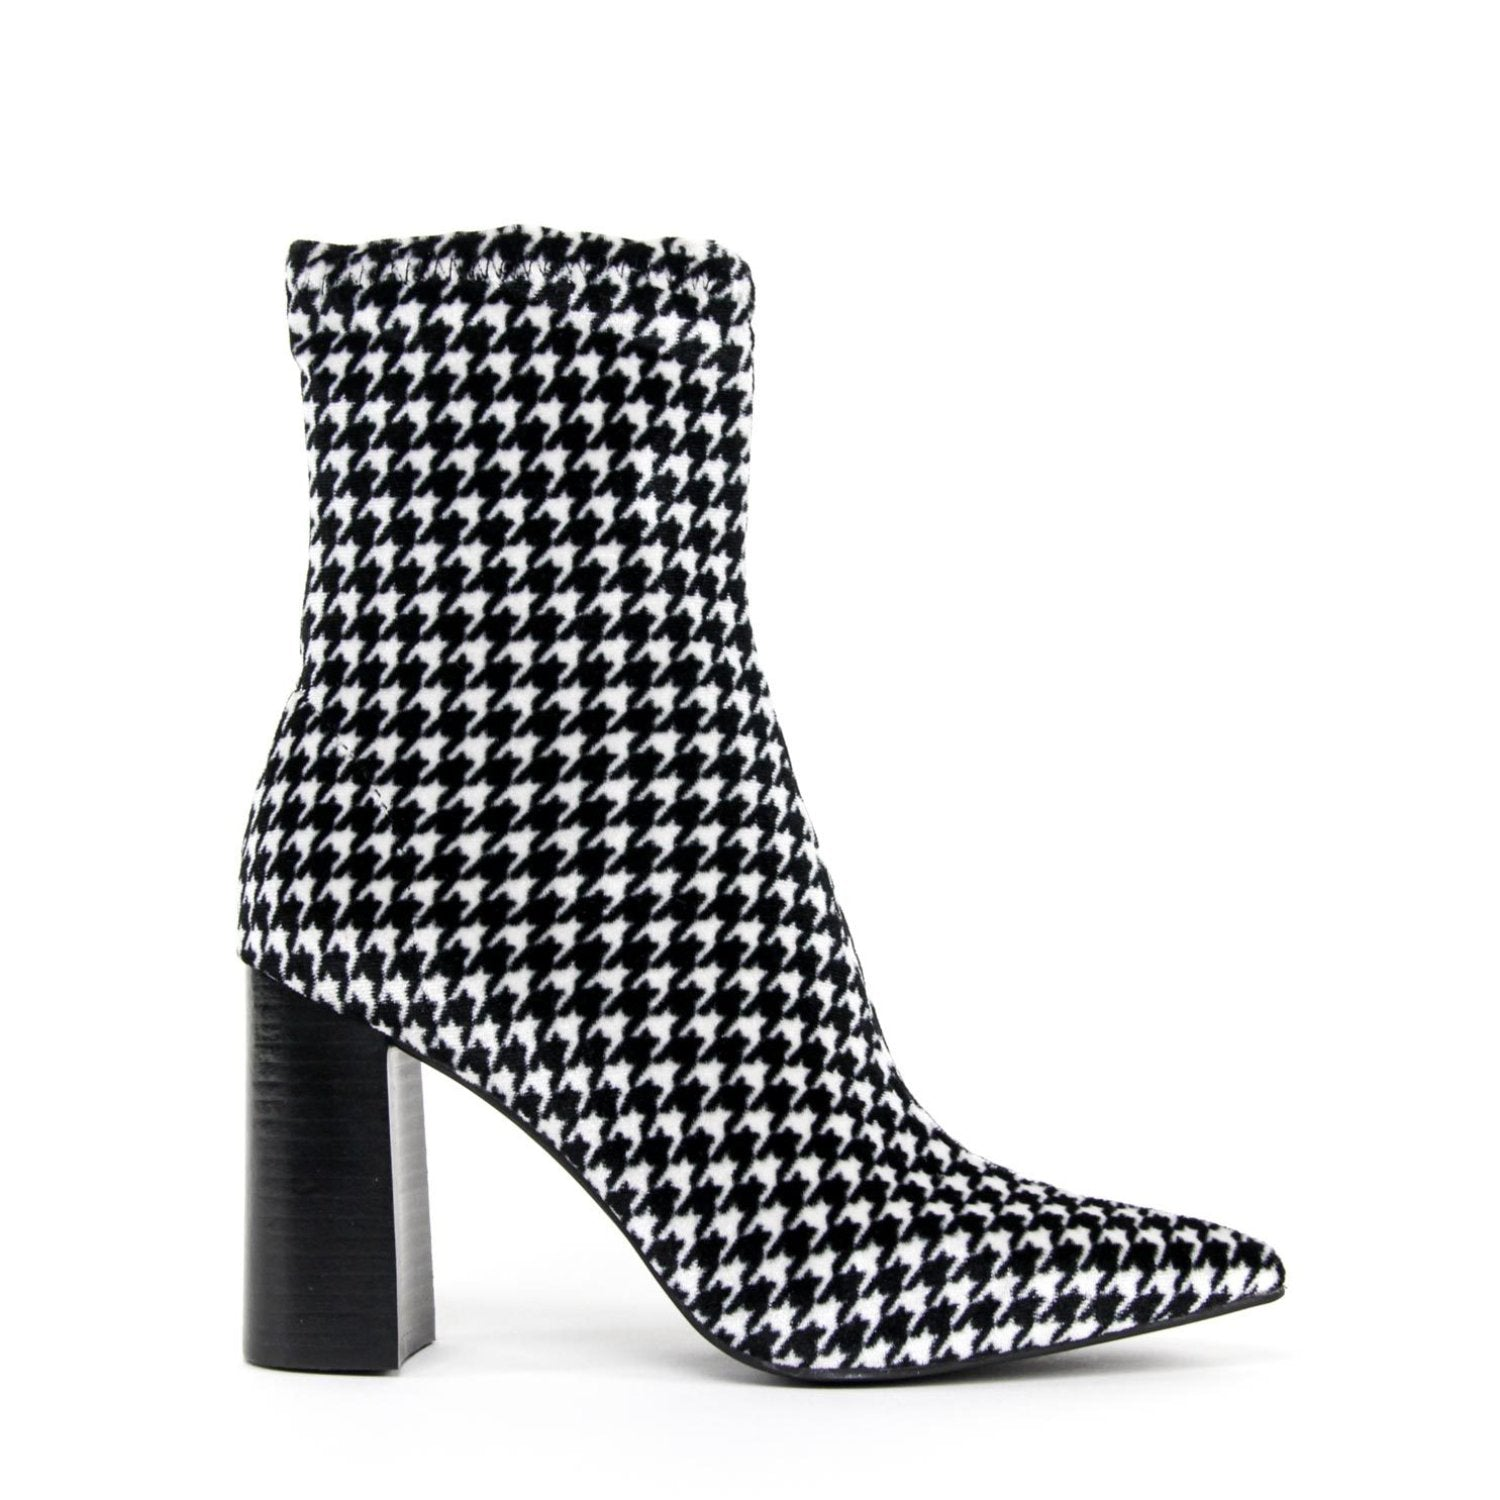 e4c9c4d50e28 Details about NEW JEFFREY CAMPBELL SIREN High Heel Ankle Boot Houndstooth  Velvet